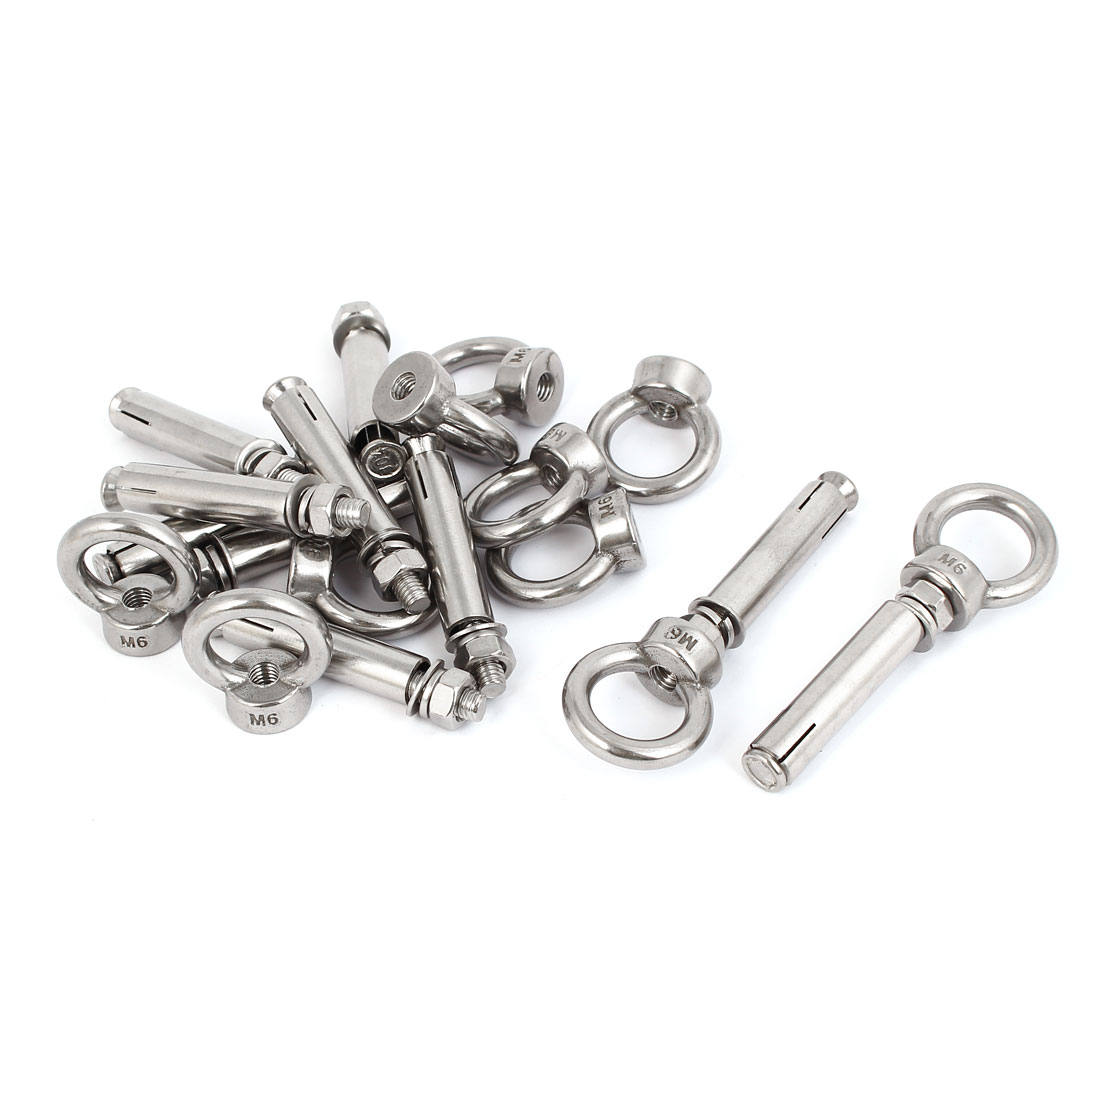 10pcs M6x60mm 304 Stainless Steel Expansion Screw Closed Hook Anchor Bolt